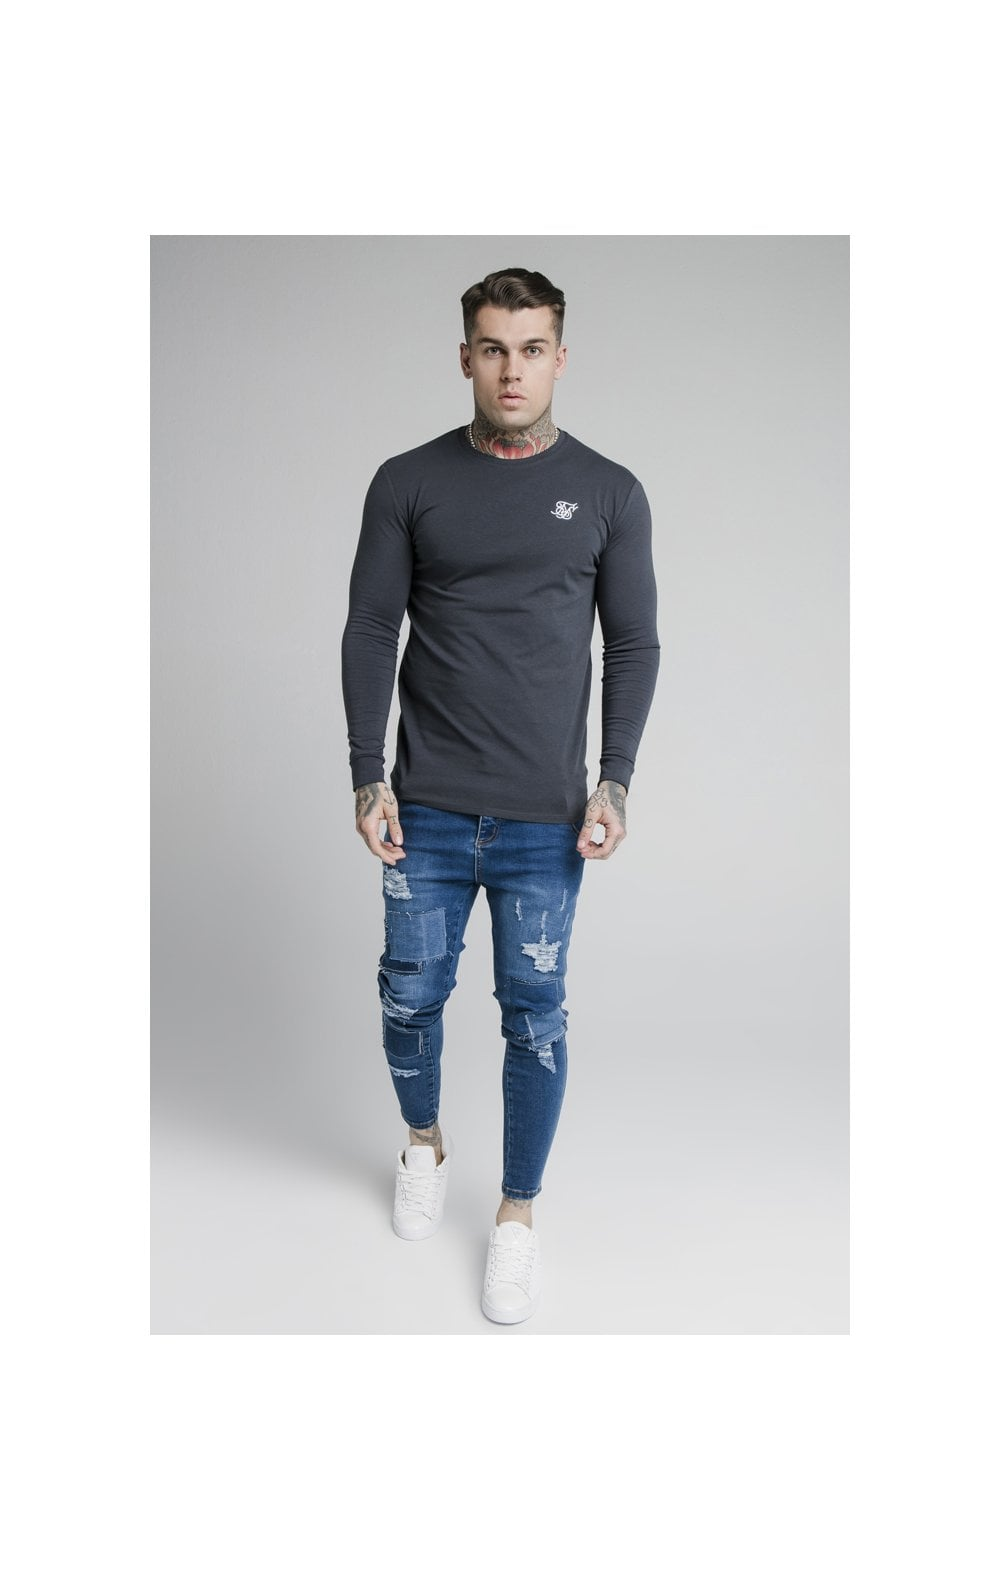 SikSilk L/S Straight Hem Gym Tee – Navy (4)